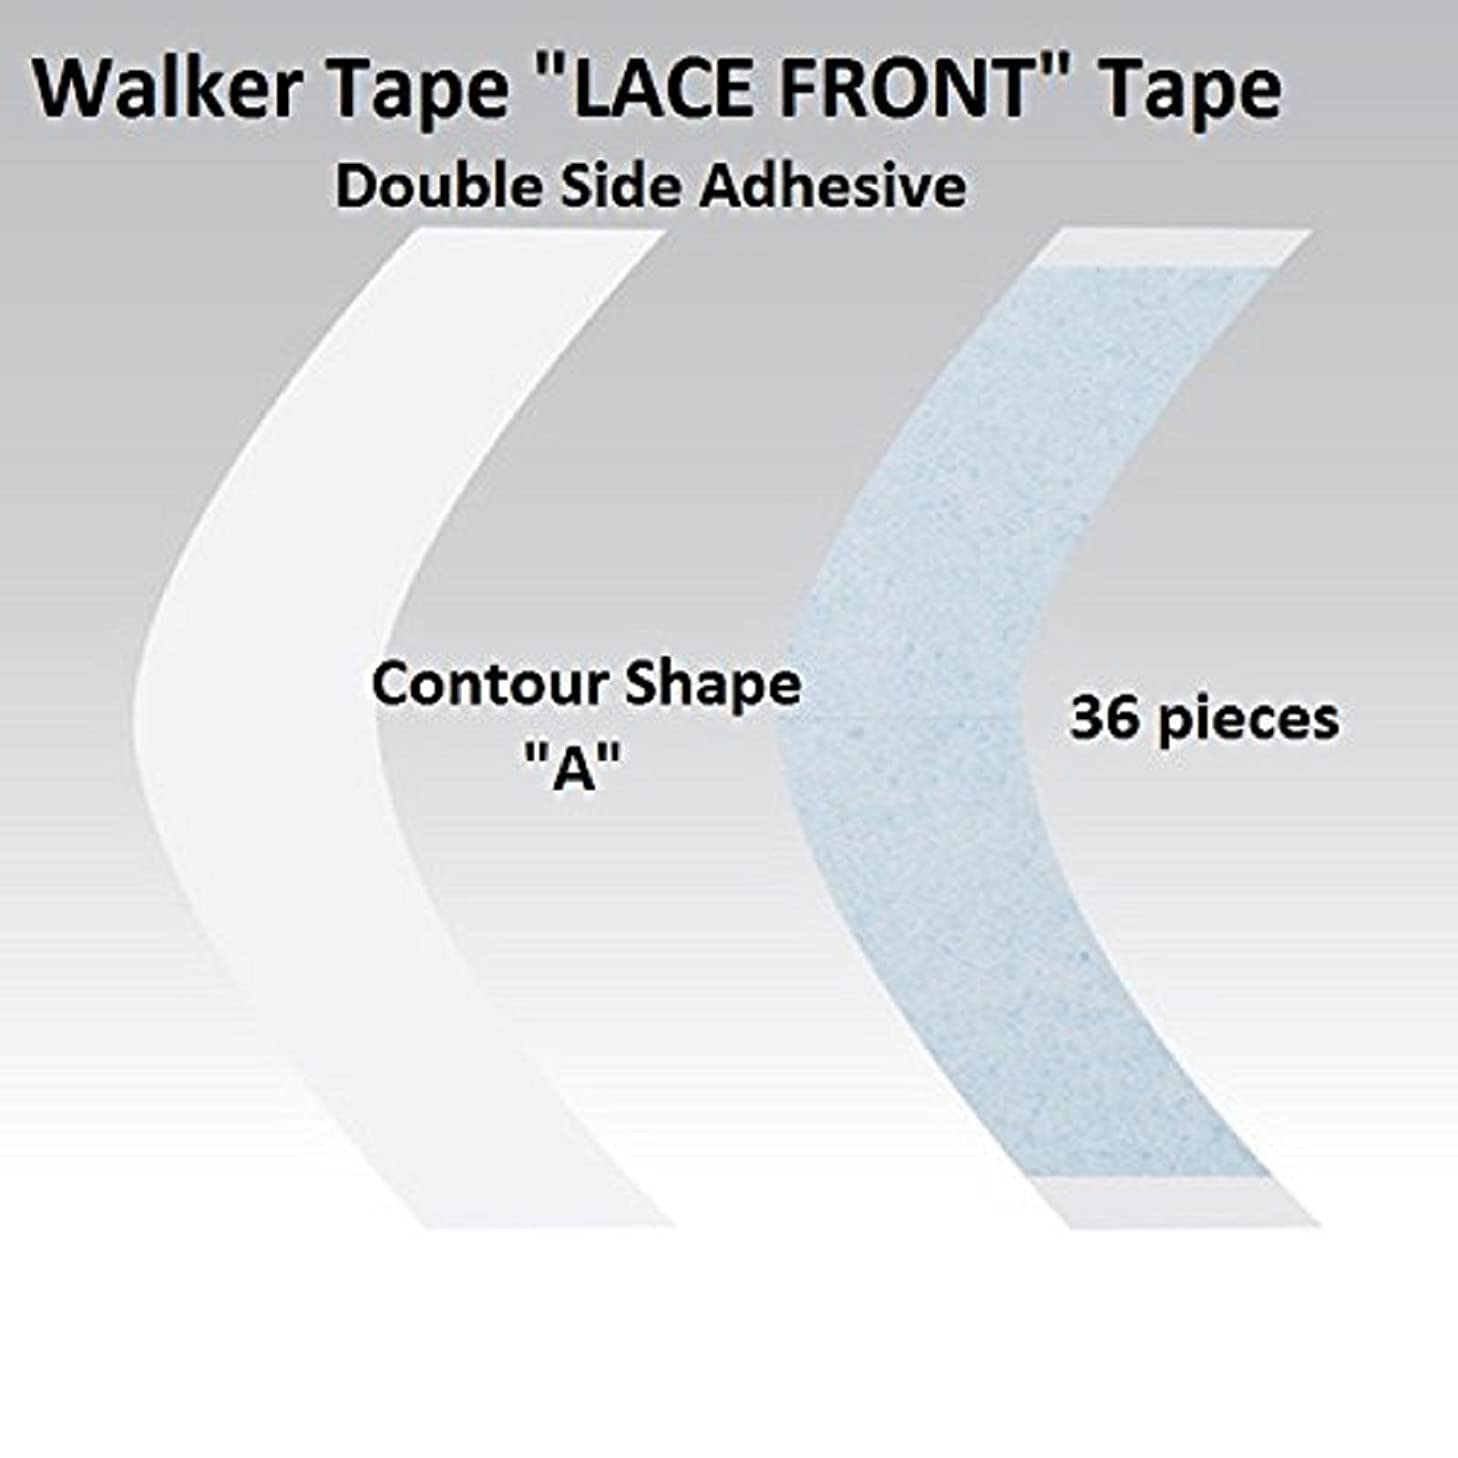 2-6 week hold A Contour Lace Front Adhesive Tape 36 Pieces